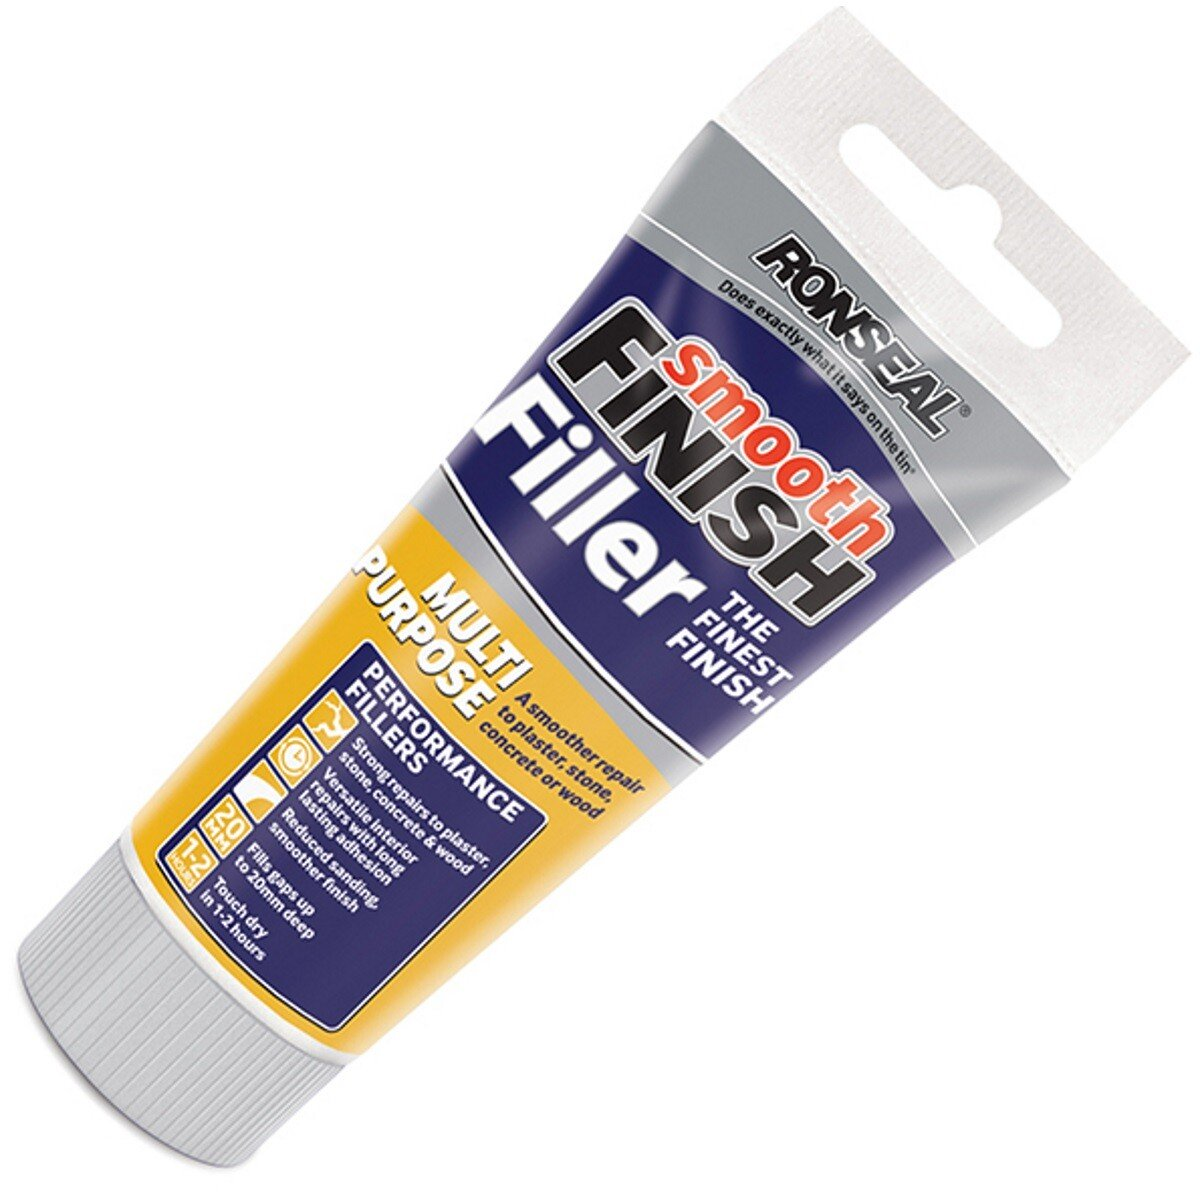 Ronseal 36544 Smooth Finish Multi Purpose Interior Wall Filler Ready Mixed 330g RSLMPRMF330G